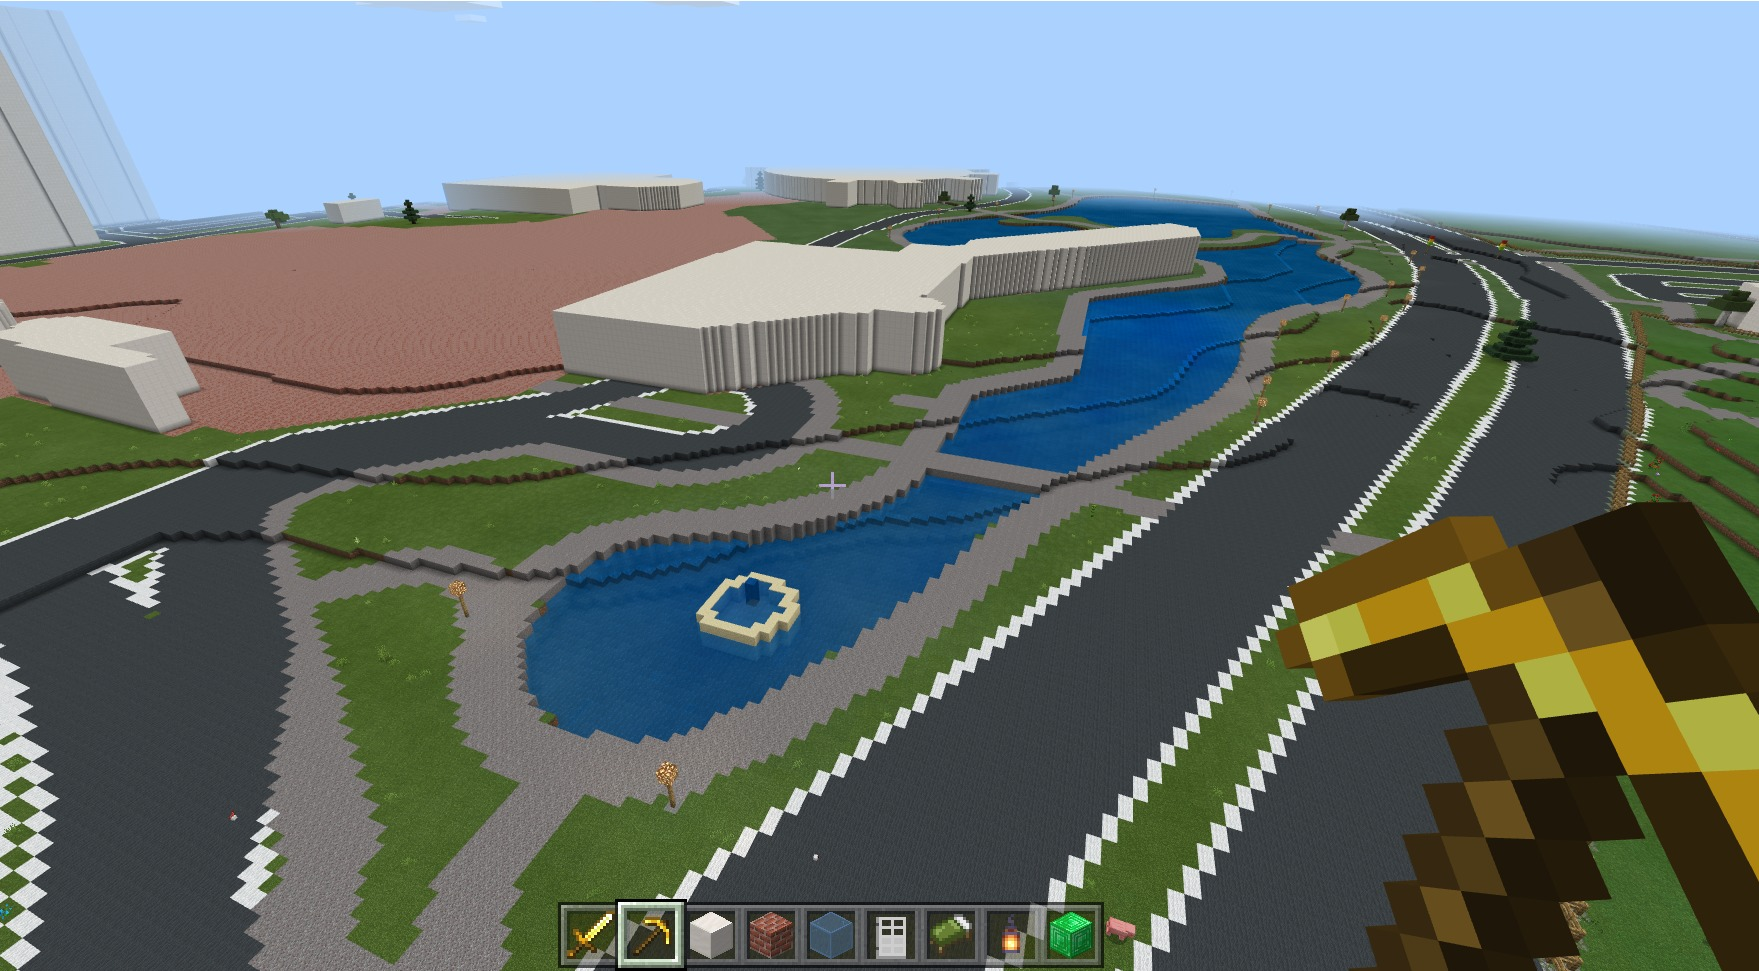 GeoBoxers Built Downtown Long Beach In Minecraft!